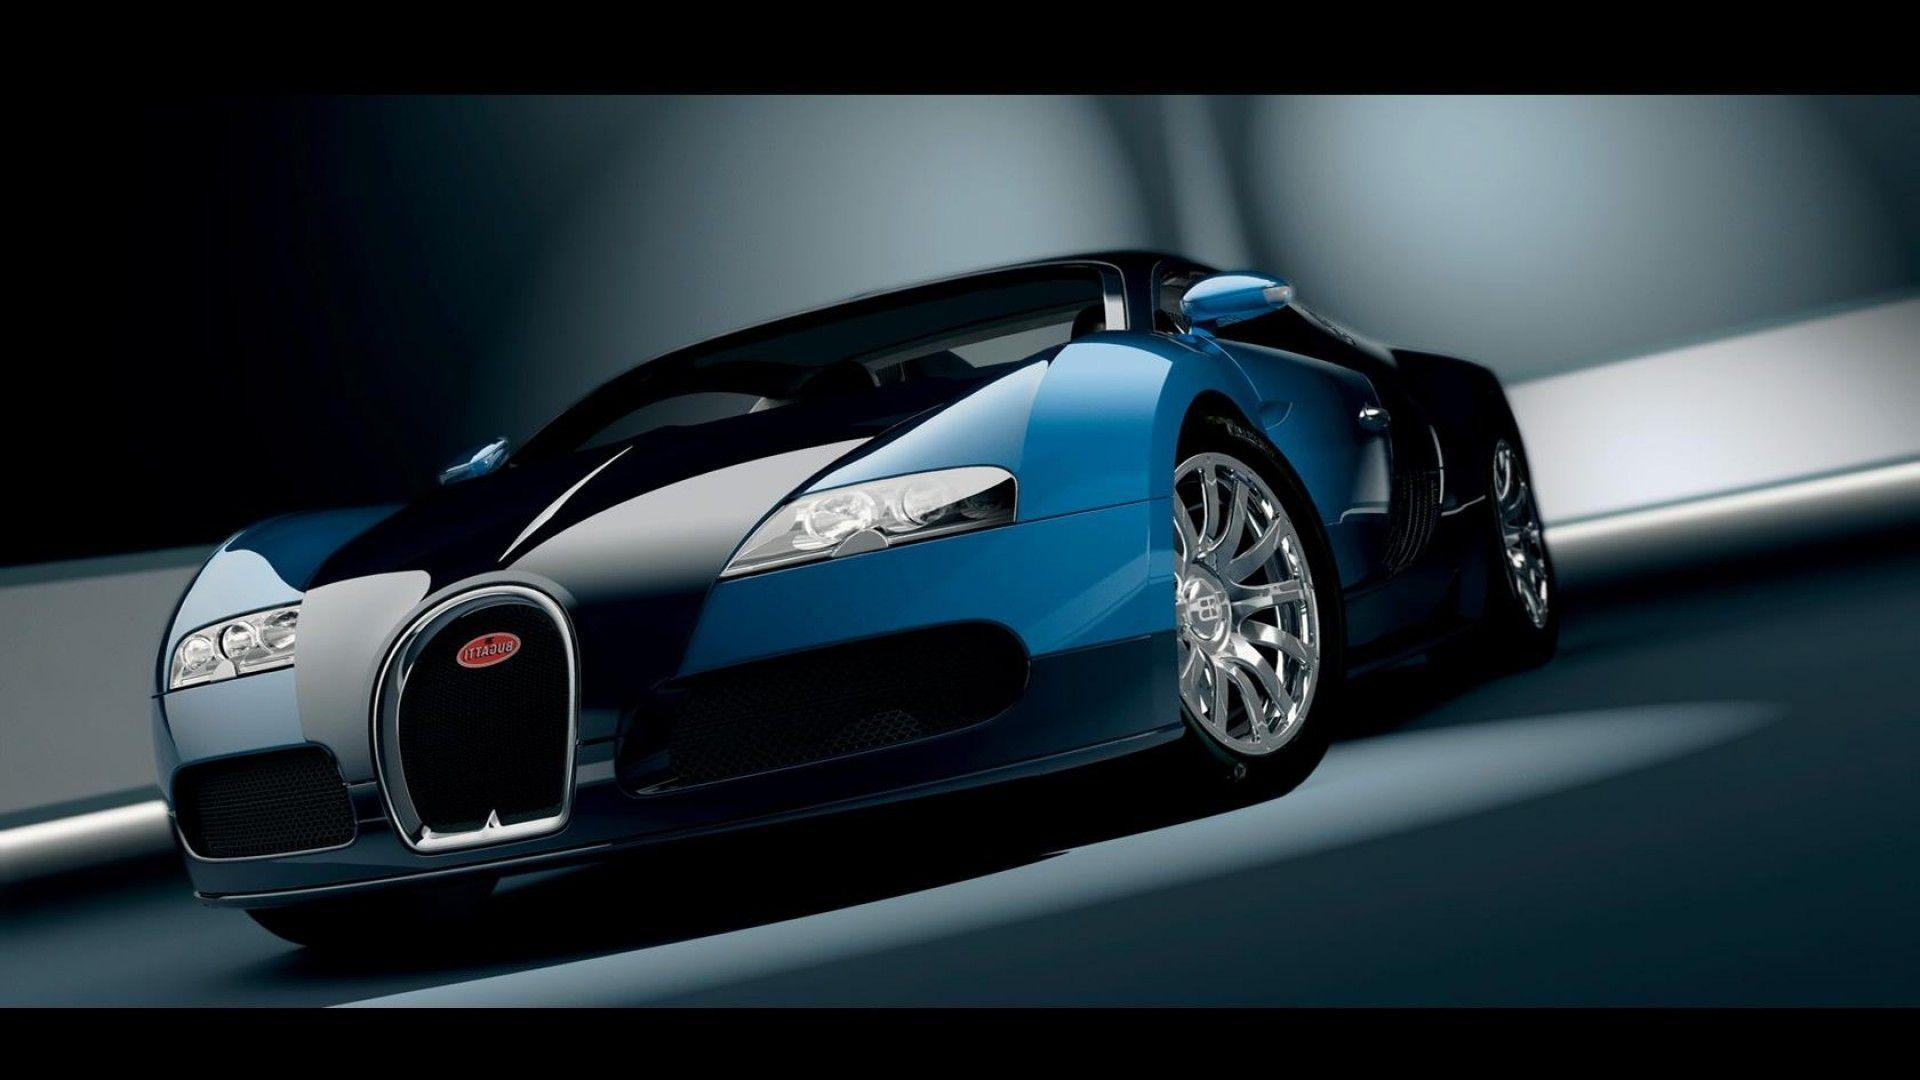 Bugatti Veyron HD Wallpapers 1920x1080